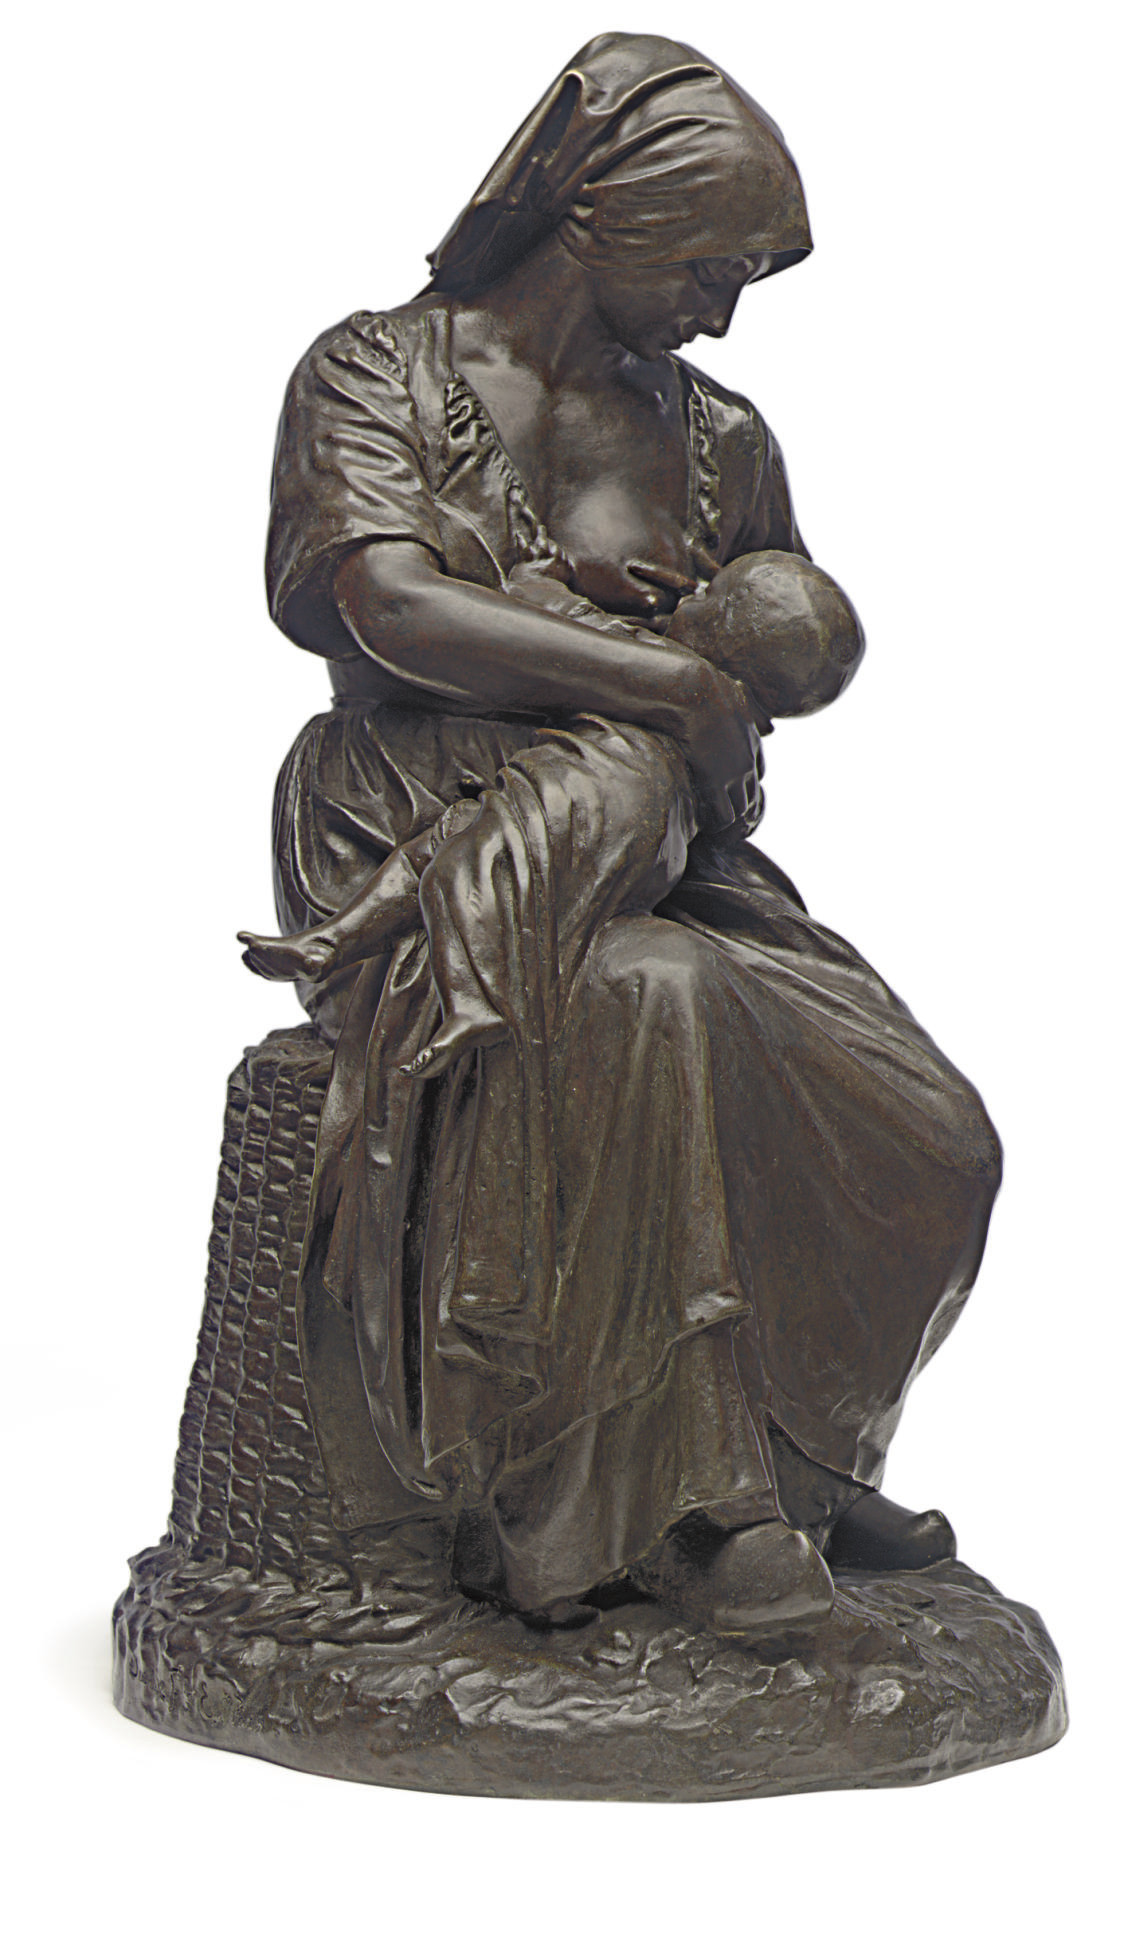 A FRENCH BRONZE FIGURAL GROUP ENTITLED 'MATERNITE'